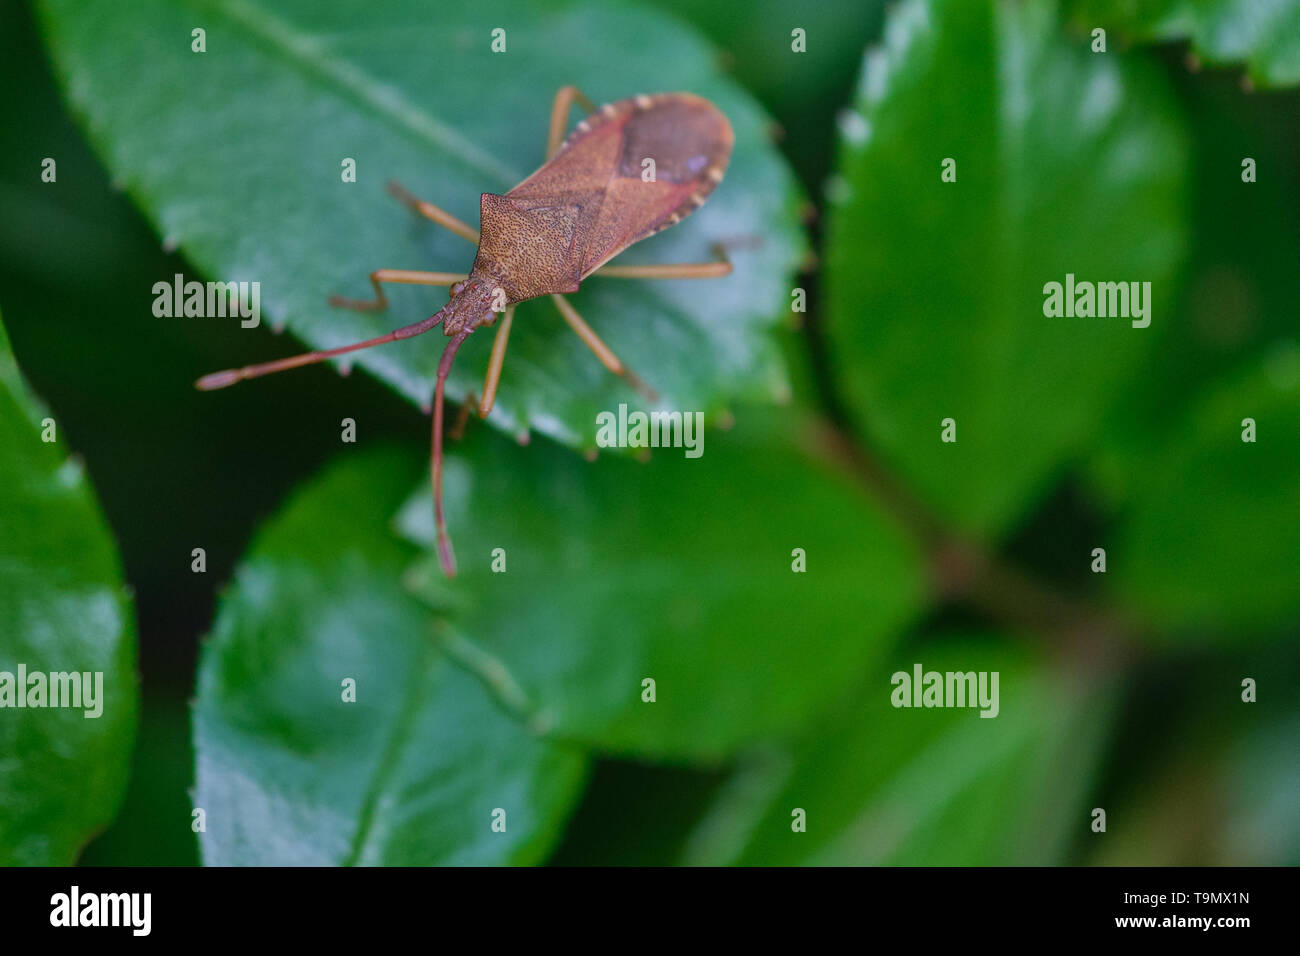 Western conifer seed bug insect, Leptoglossus occidentalis, or WCSB on a green leaf - Stock Image